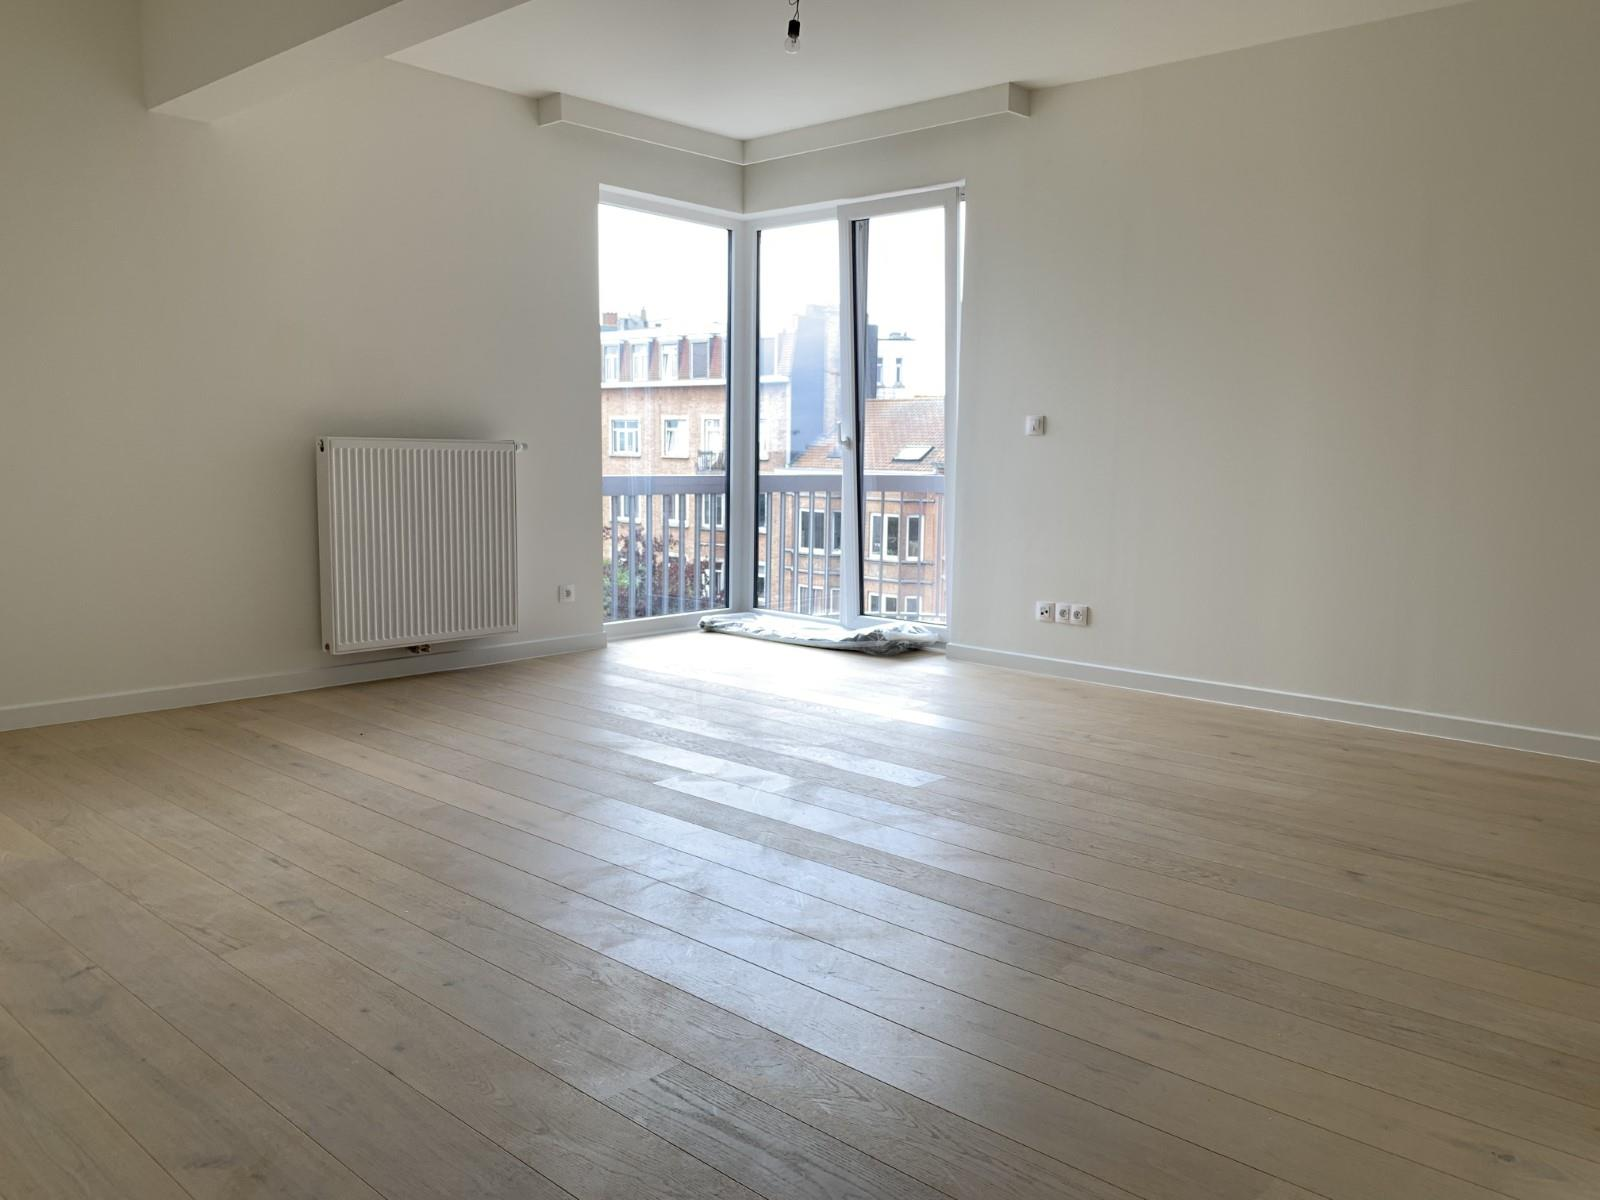 Appartement exceptionnel - Schaerbeek - #3964914-0